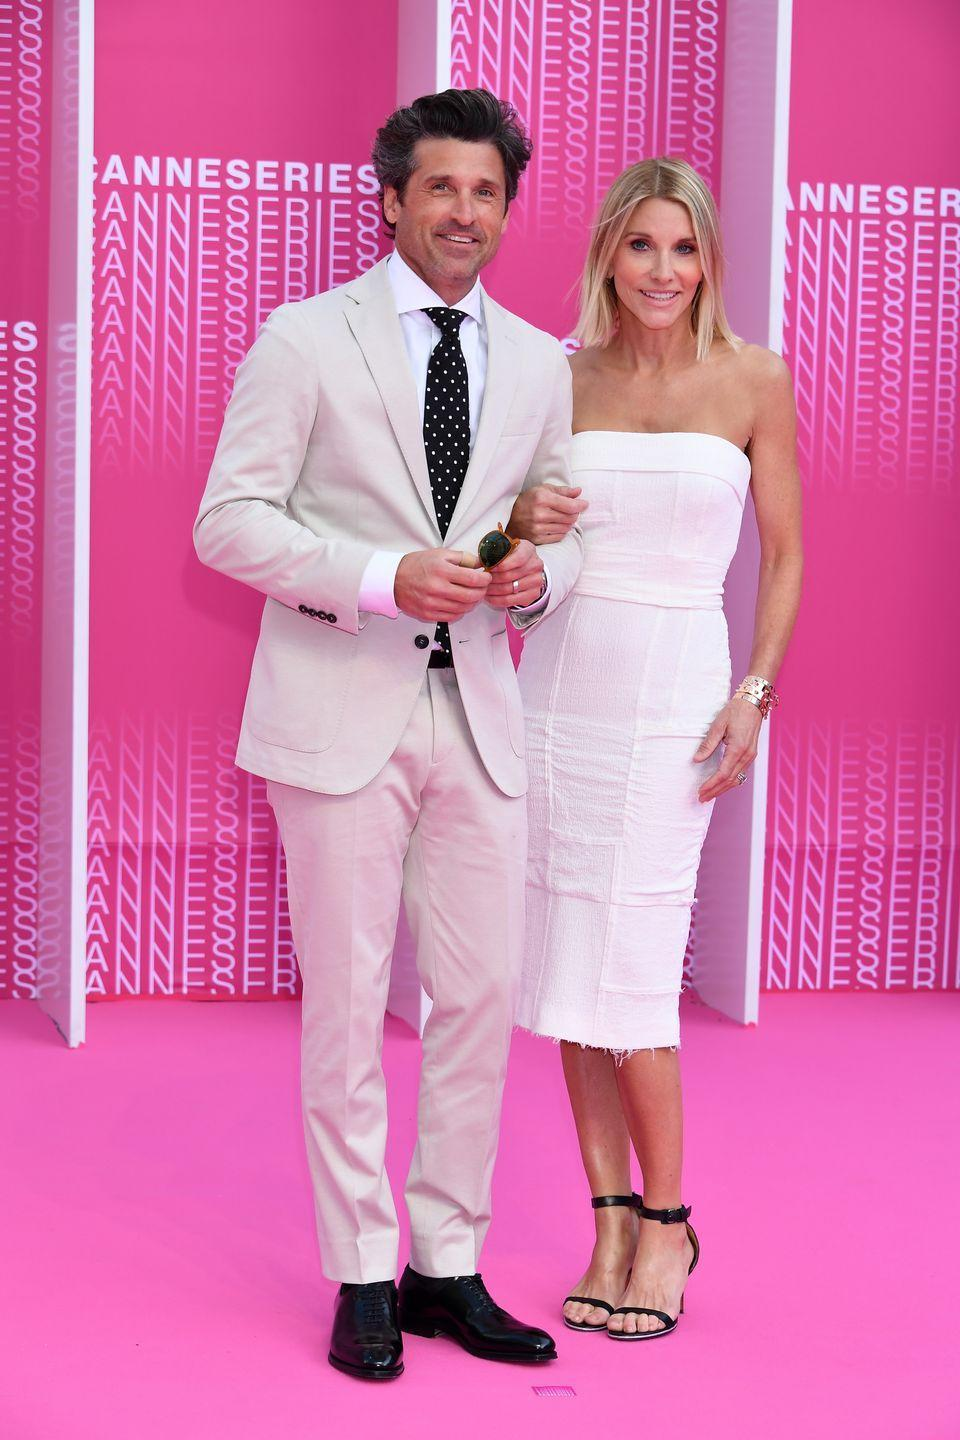 """<p> About five years later, Dempsey married Fink, a makeup artist, and the two have been together for about 20 years. When asked about their secrets to success, he told <a href=""""https://www.etonline.com/patrick-dempsey-gets-candid-about-what-hes-learned-after-19-years-of-marriage-exclusive-110816"""" rel=""""nofollow noopener"""" target=""""_blank"""" data-ylk=""""slk:Entertainment Tonight"""" class=""""link rapid-noclick-resp""""><em>Entertainment Tonight</em></a>, """"The older you get, the more you realize how little time you have, and [how] you want to make the most of it.""""</p>"""